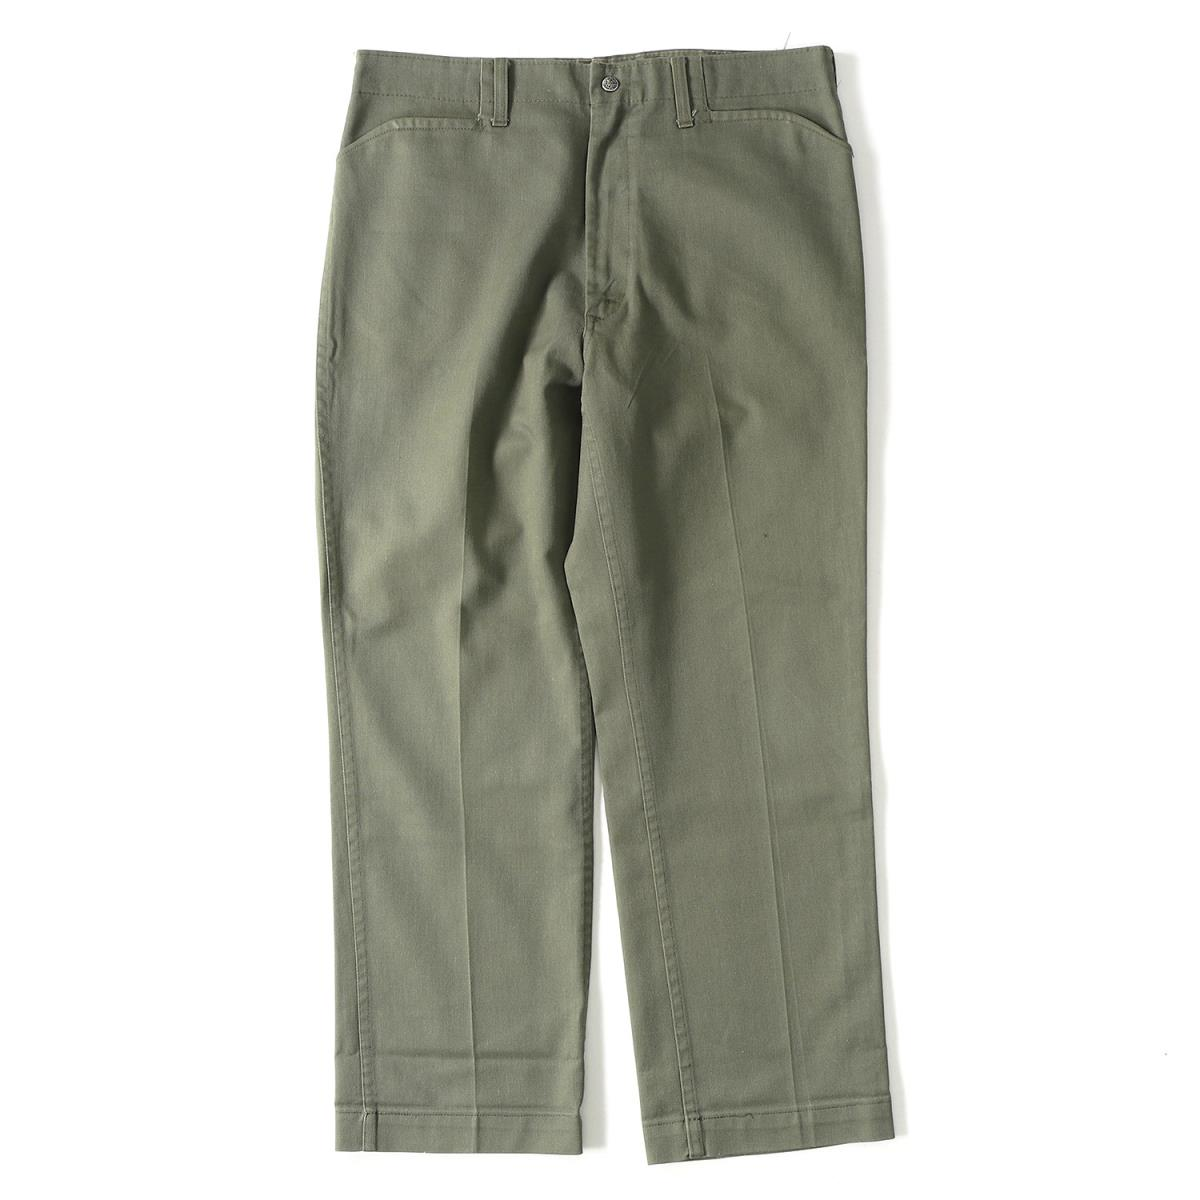 Lee vintage (Lee) 70' s Frisco jeans work pants khaki